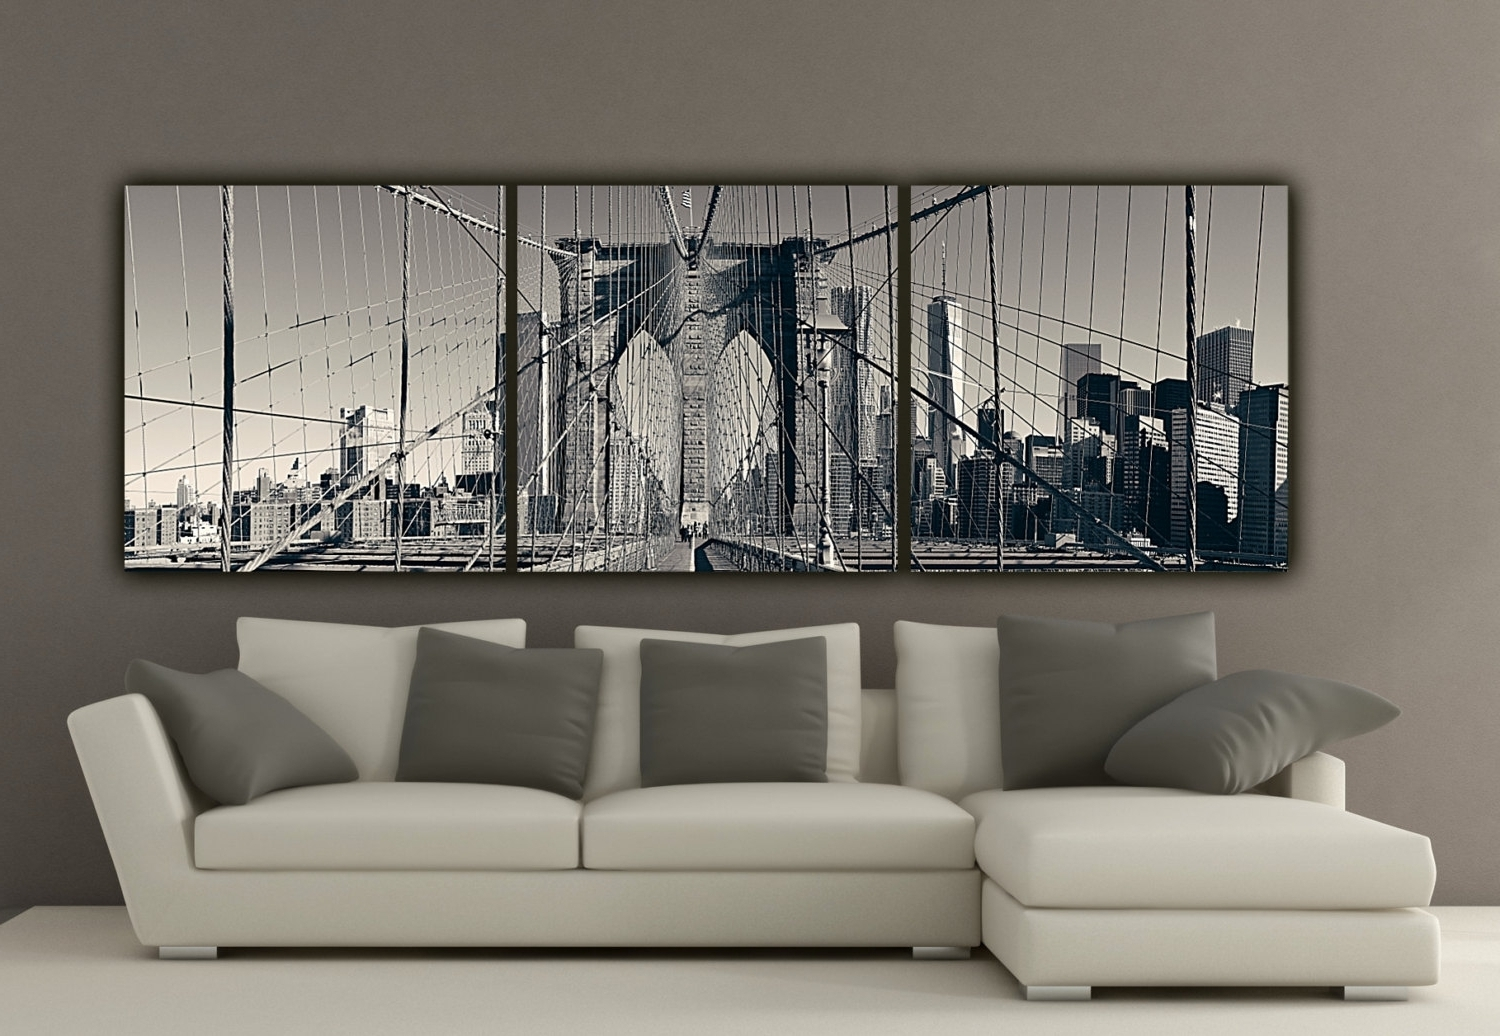 Wall Decorations Within Best And Newest New York City Wall Art (View 11 of 15)